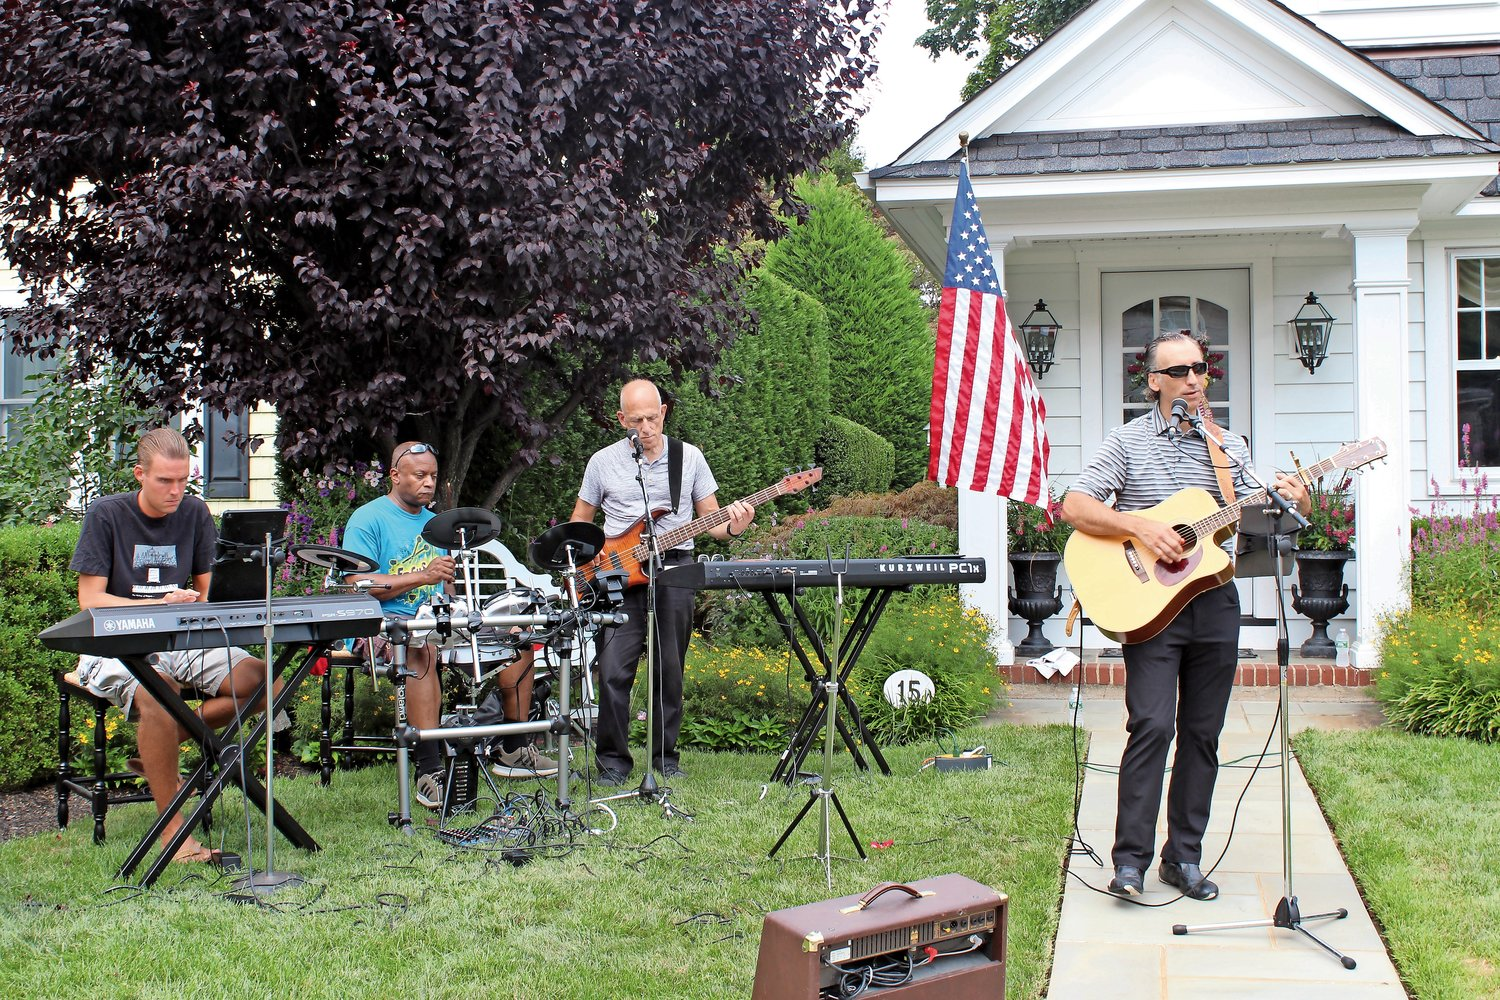 John Tittmann, of West Hempstead, far left above, Brian Carrot, of Valley Stream, Joe Ciccarello, of Malverne, and Brett Crompton, of Floral Park, rehearsed at the Wahligs' home on Wallace Street.